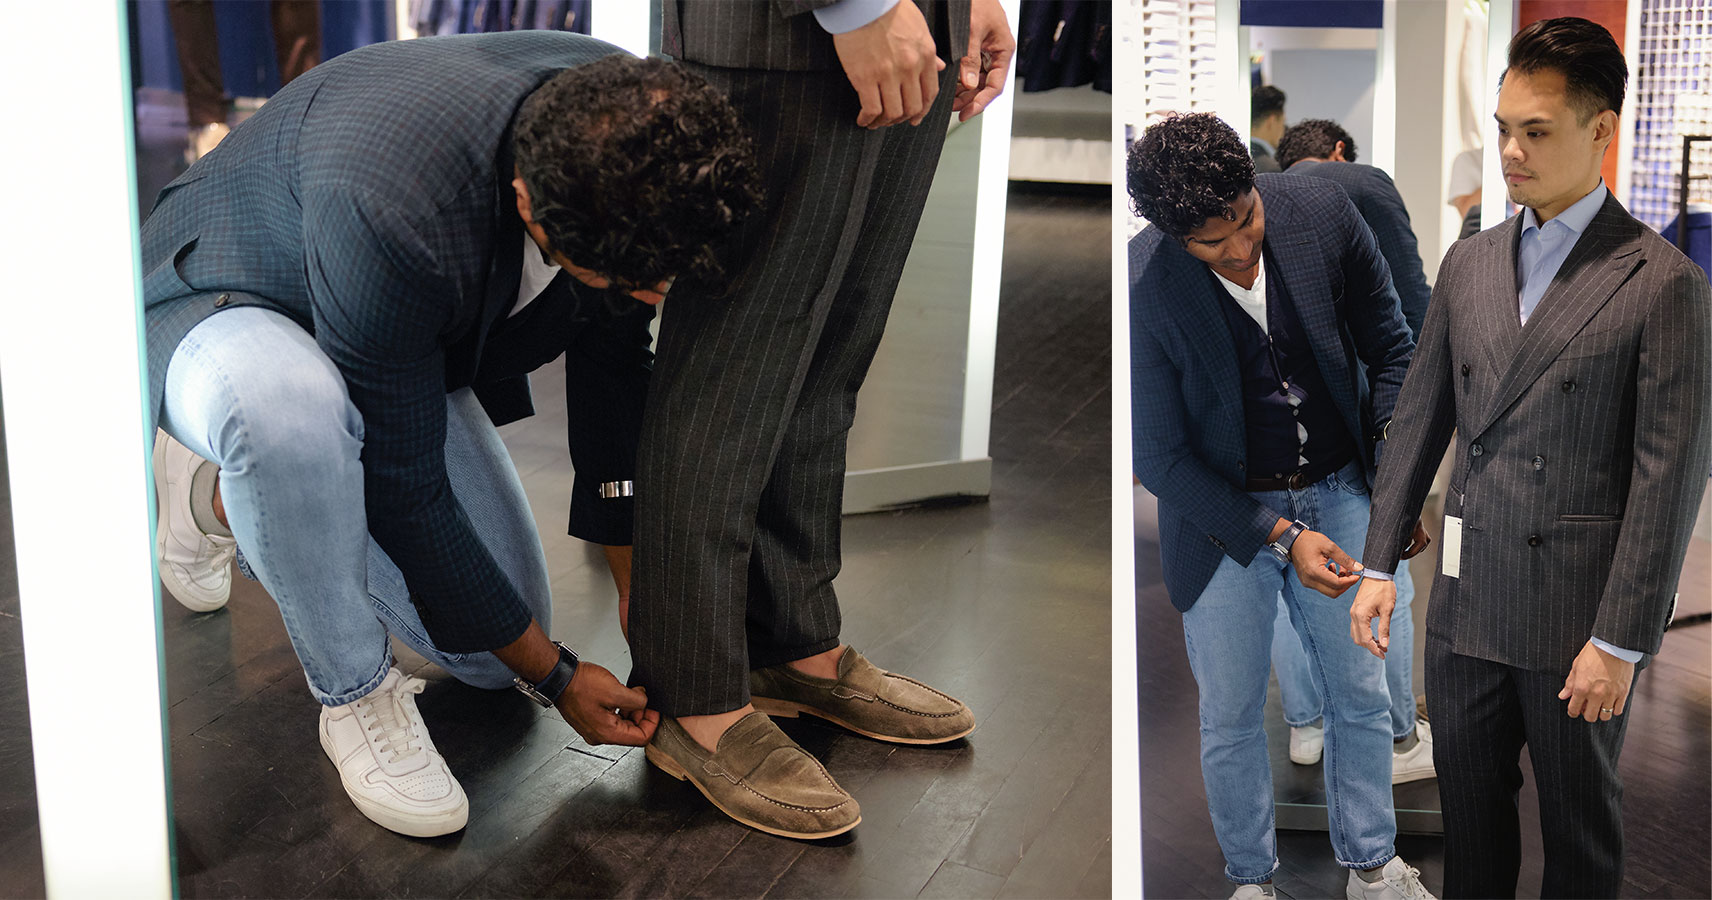 suitsupply custom made suit pants and jacket sleeve adjustments - effortless gent